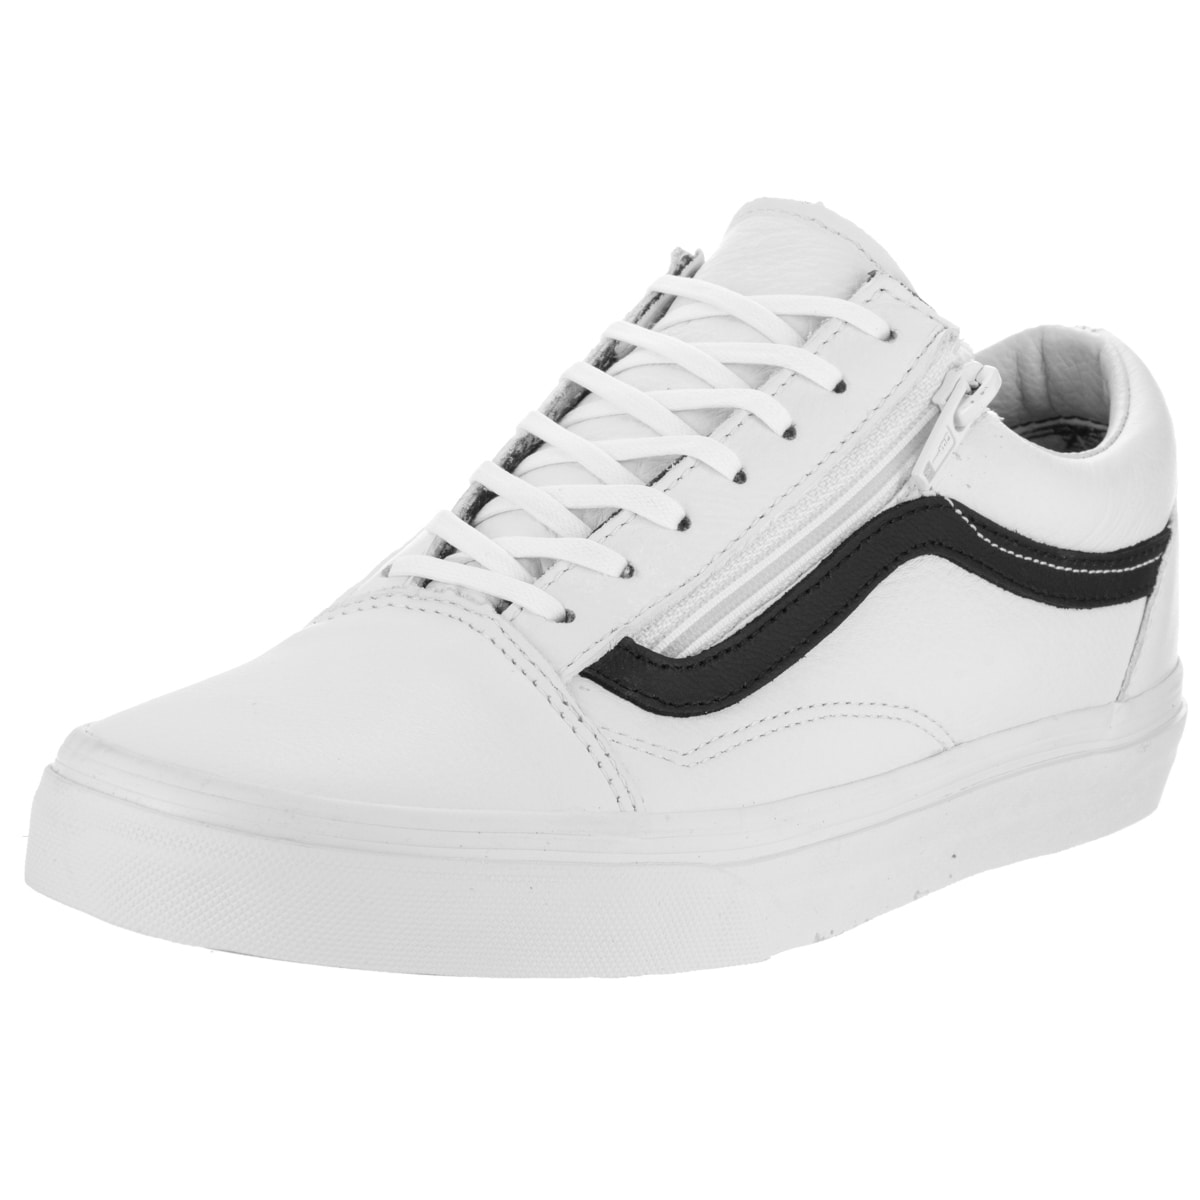 d8fa0980929 Shop Vans Unisex Old Skool Zip White and Black Skate Shoe - Free Shipping  Today - Overstock.com - 13746931